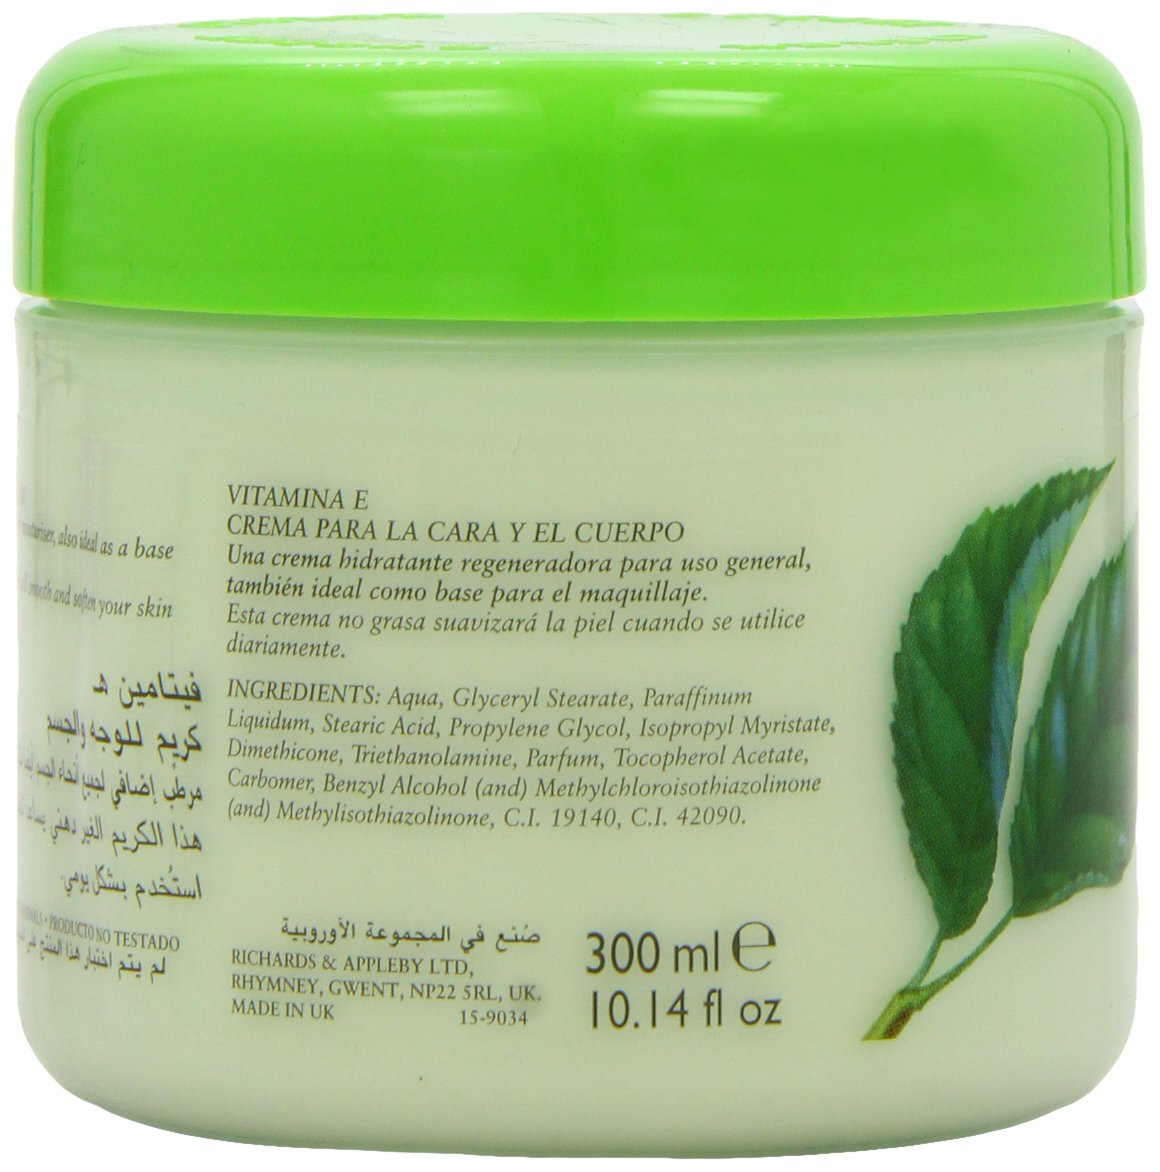 Amazon.com : Cyclax Nature Pure Vitamin E Face and Body Cream 300ml : Beauty